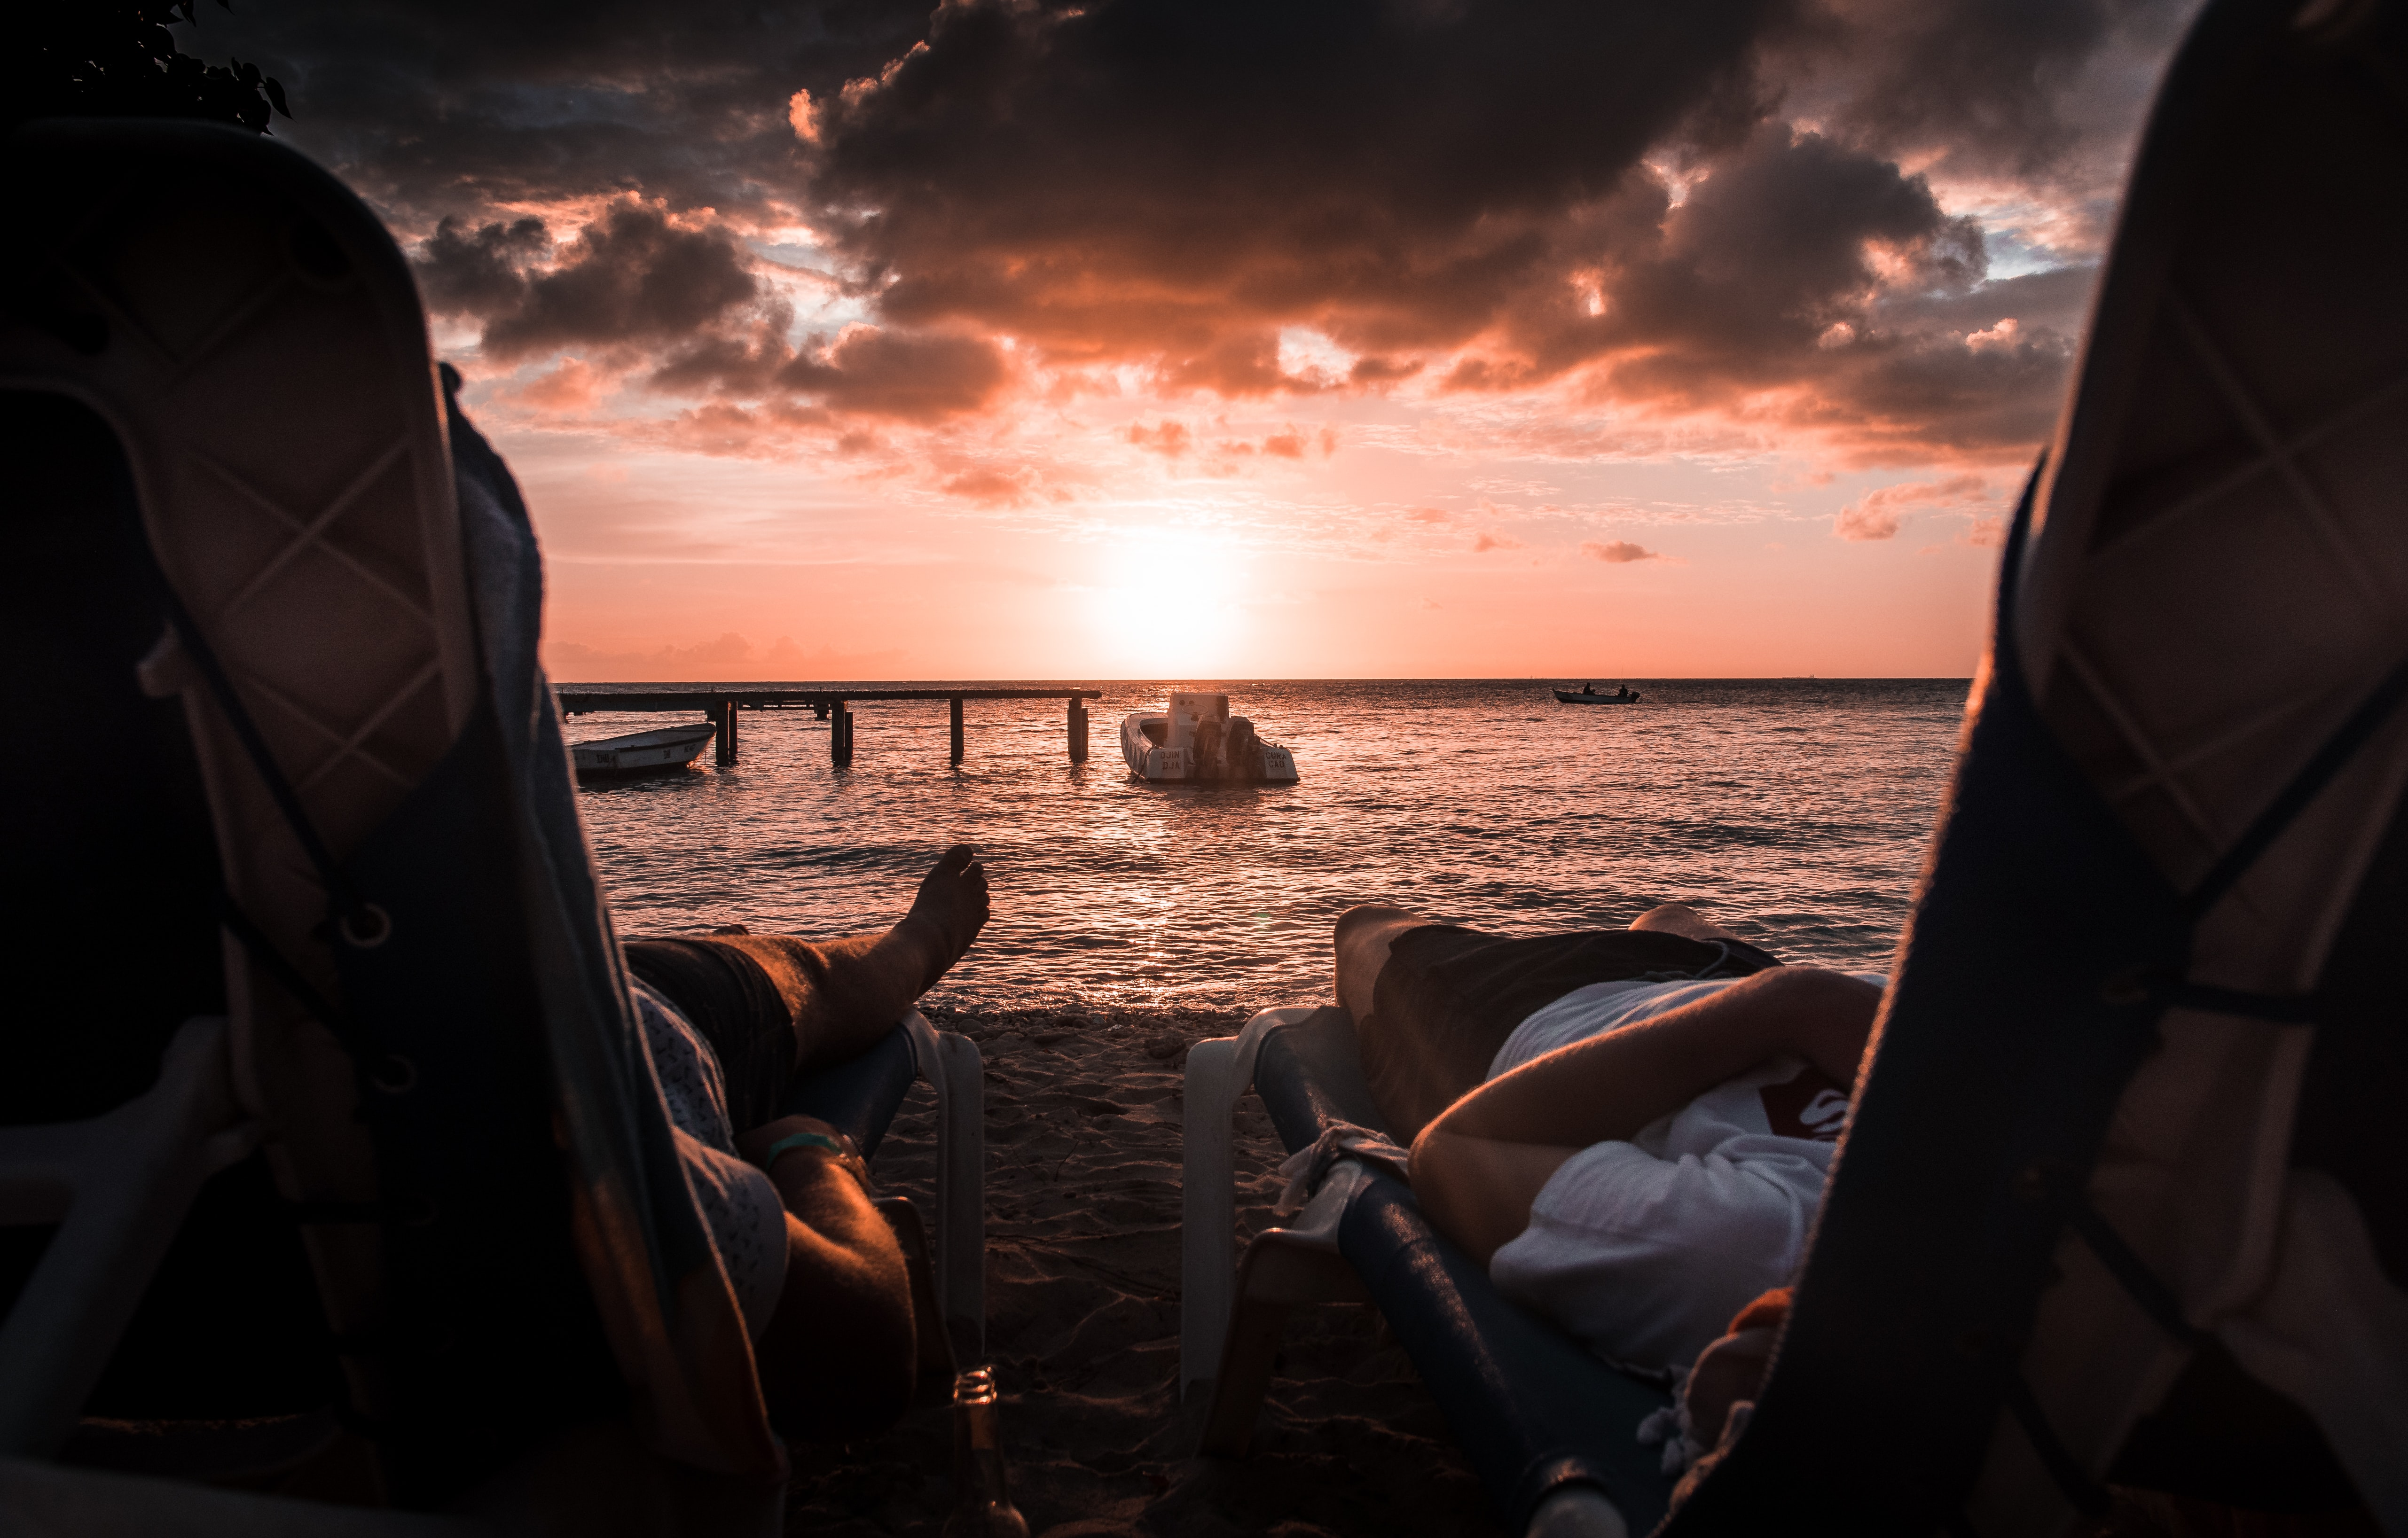 two person lying on chaise lounge under sunset